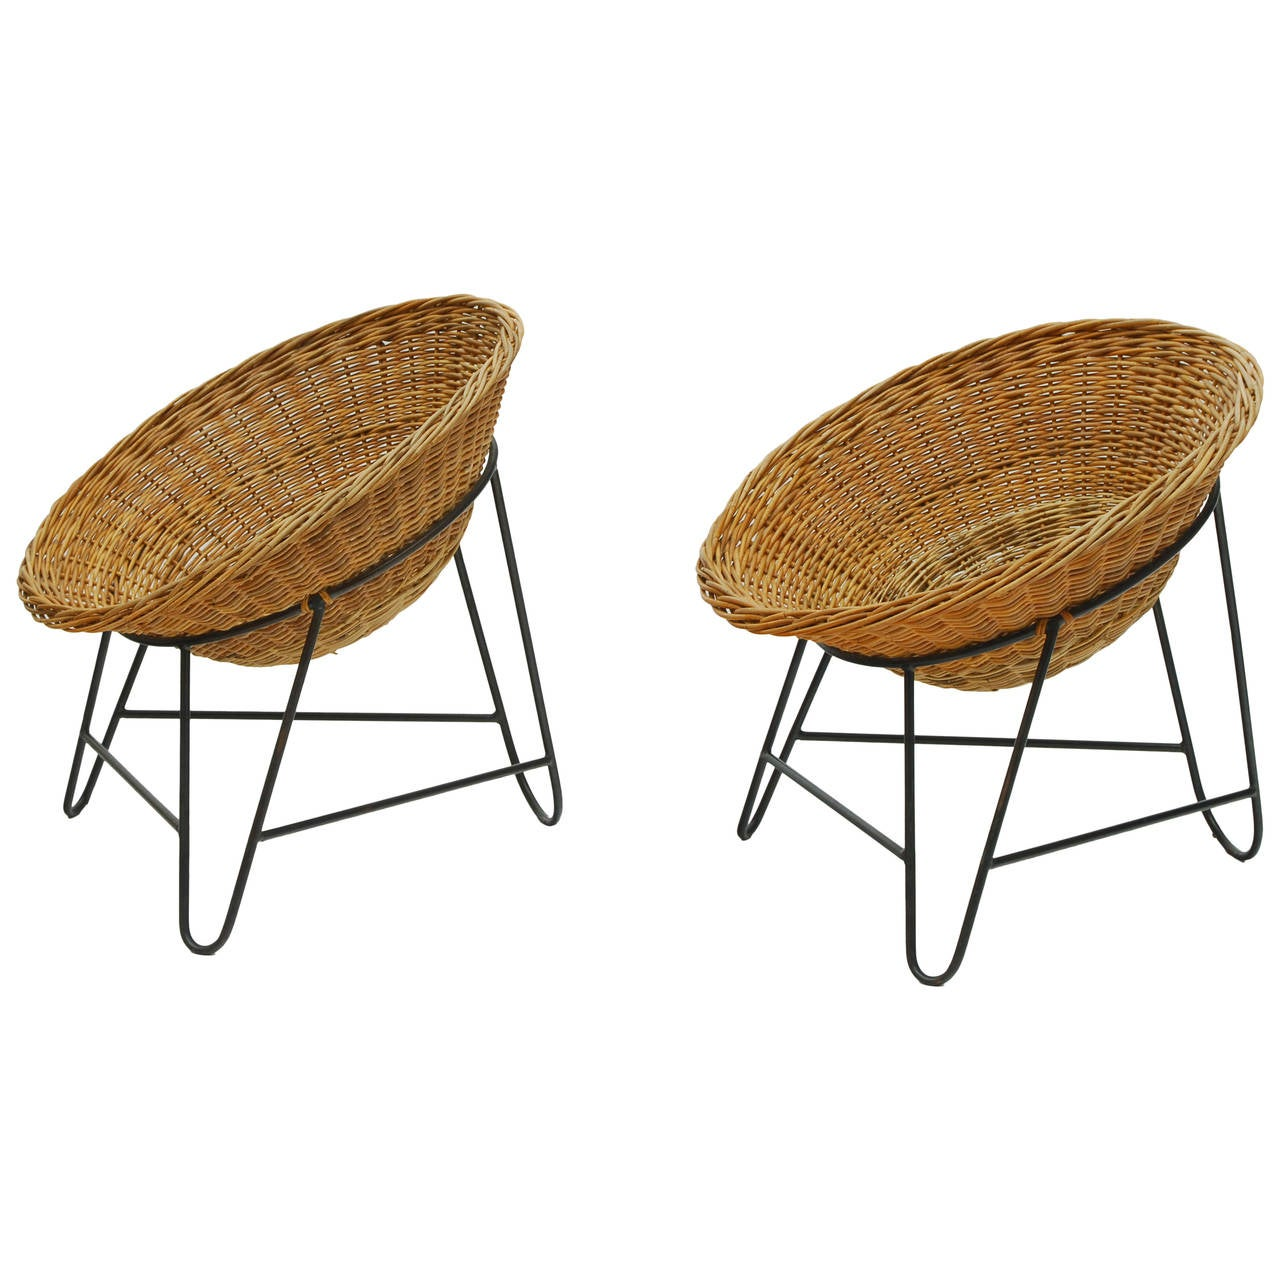 High Quality Set Of Two French Wicker Chairs, Circa 1950 1